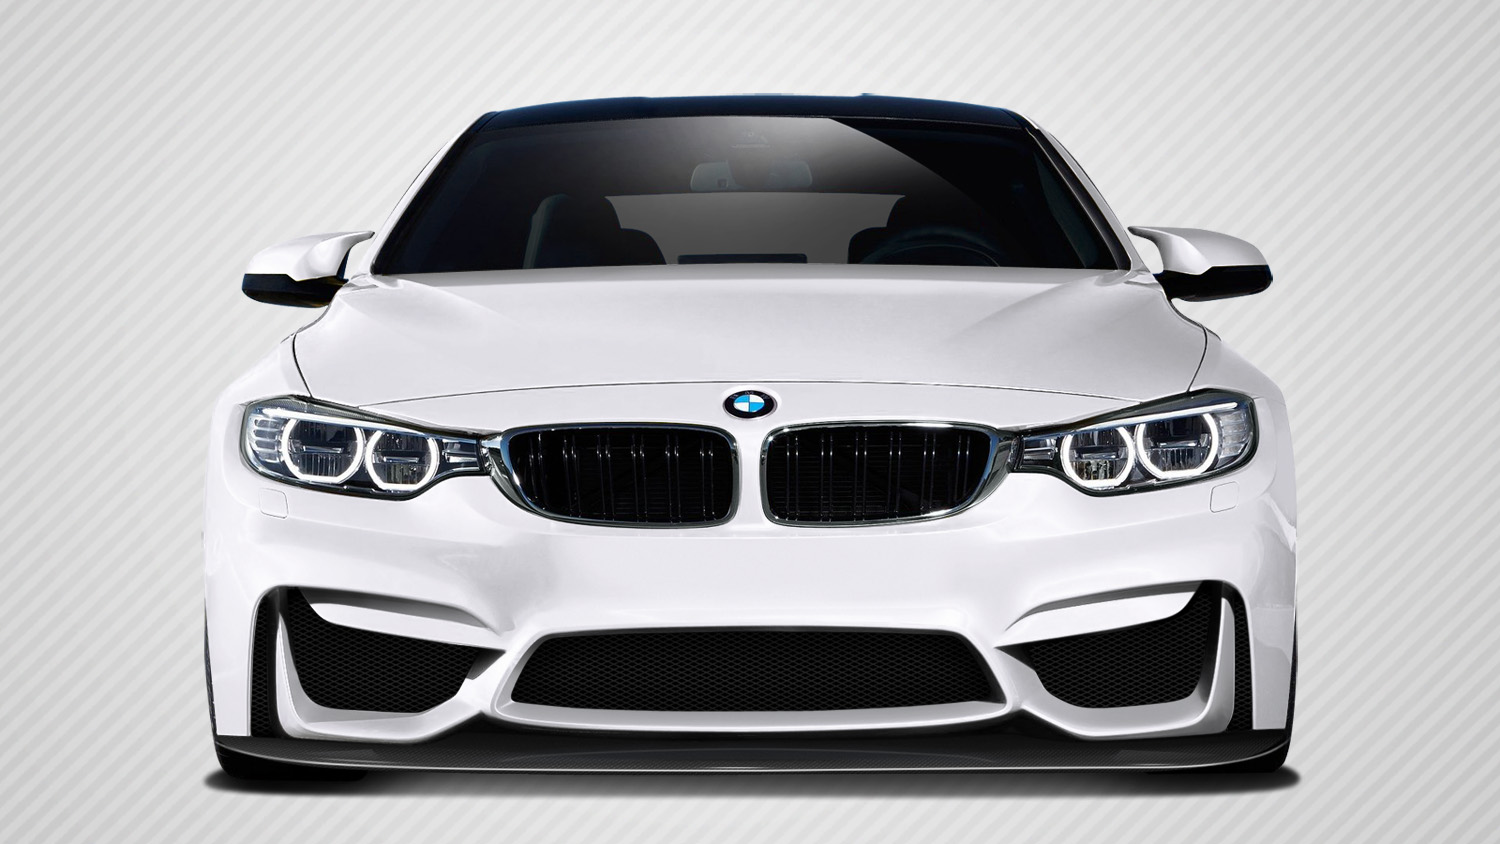 2016 BMW 4 Series ALL Front Bumper Bodykit - BMW 4 Series F32 Carbon Creations M4 Look Front Splitter ( must be used with M3 Look front bumper )